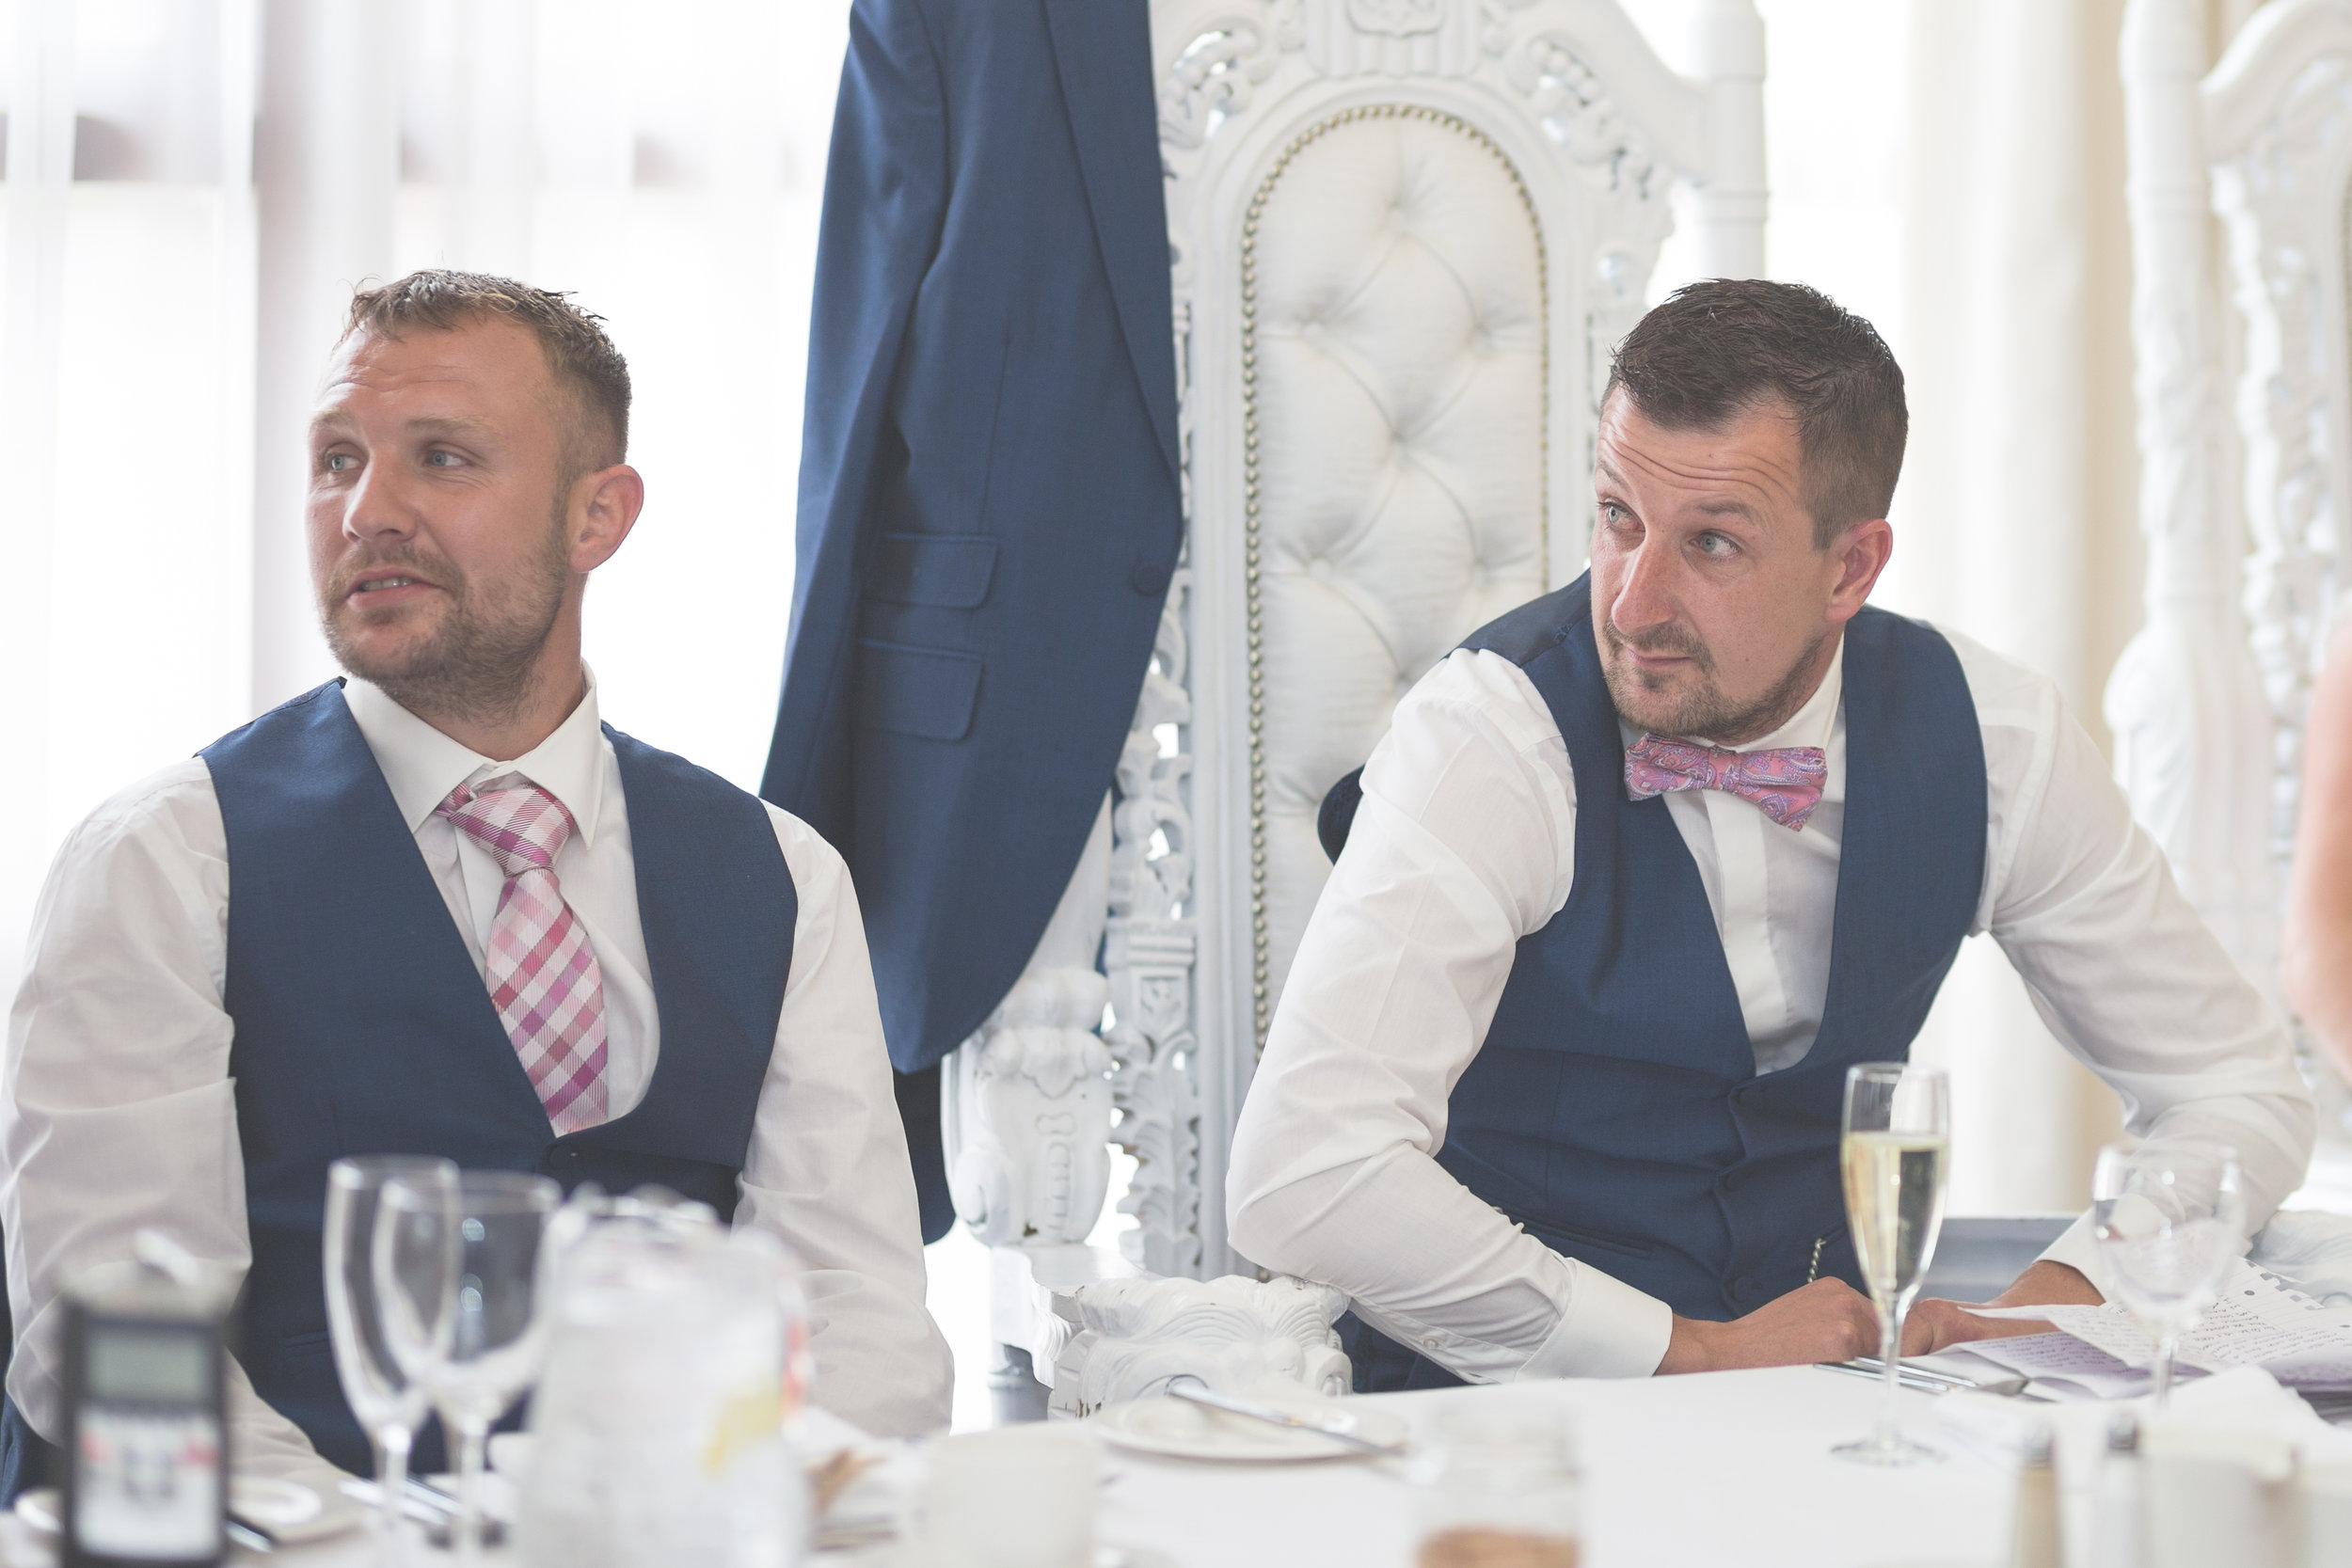 Antoinette & Stephen - Speeches | Brian McEwan Photography | Wedding Photographer Northern Ireland 46.jpg